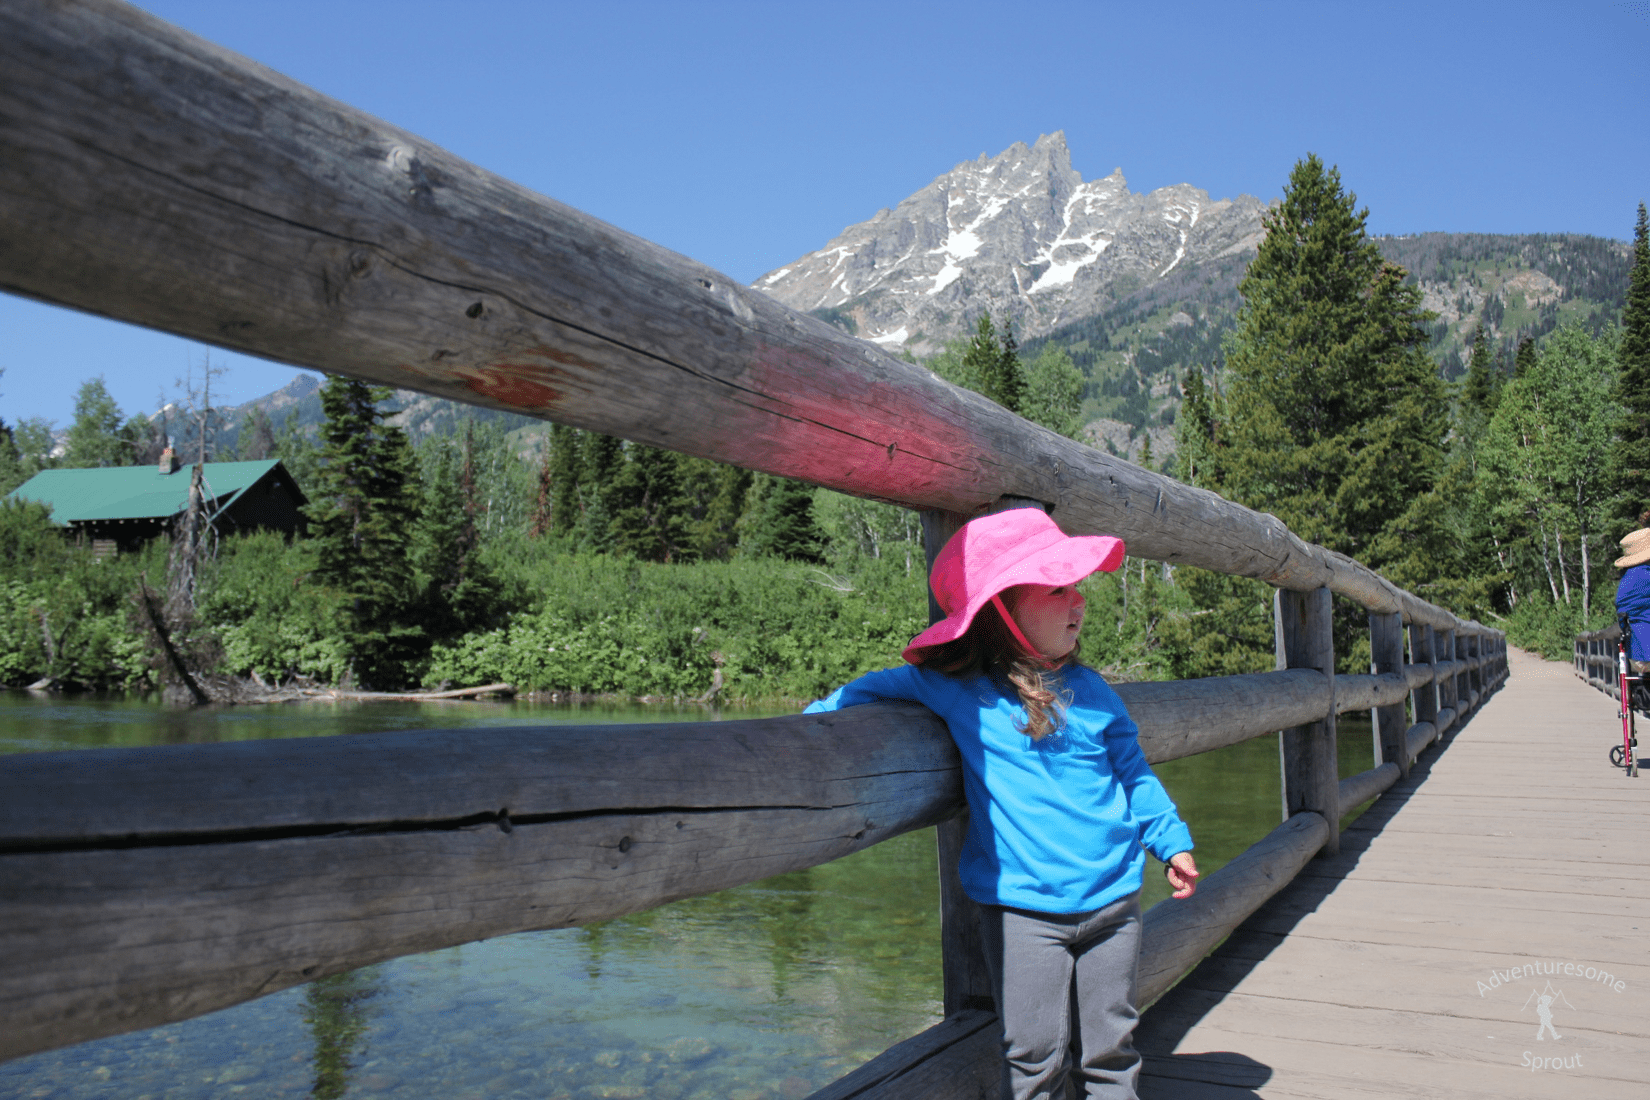 Grand Tetons: Jenny Lake Trail to Inspiration Point/ Cascade Canyon Trail